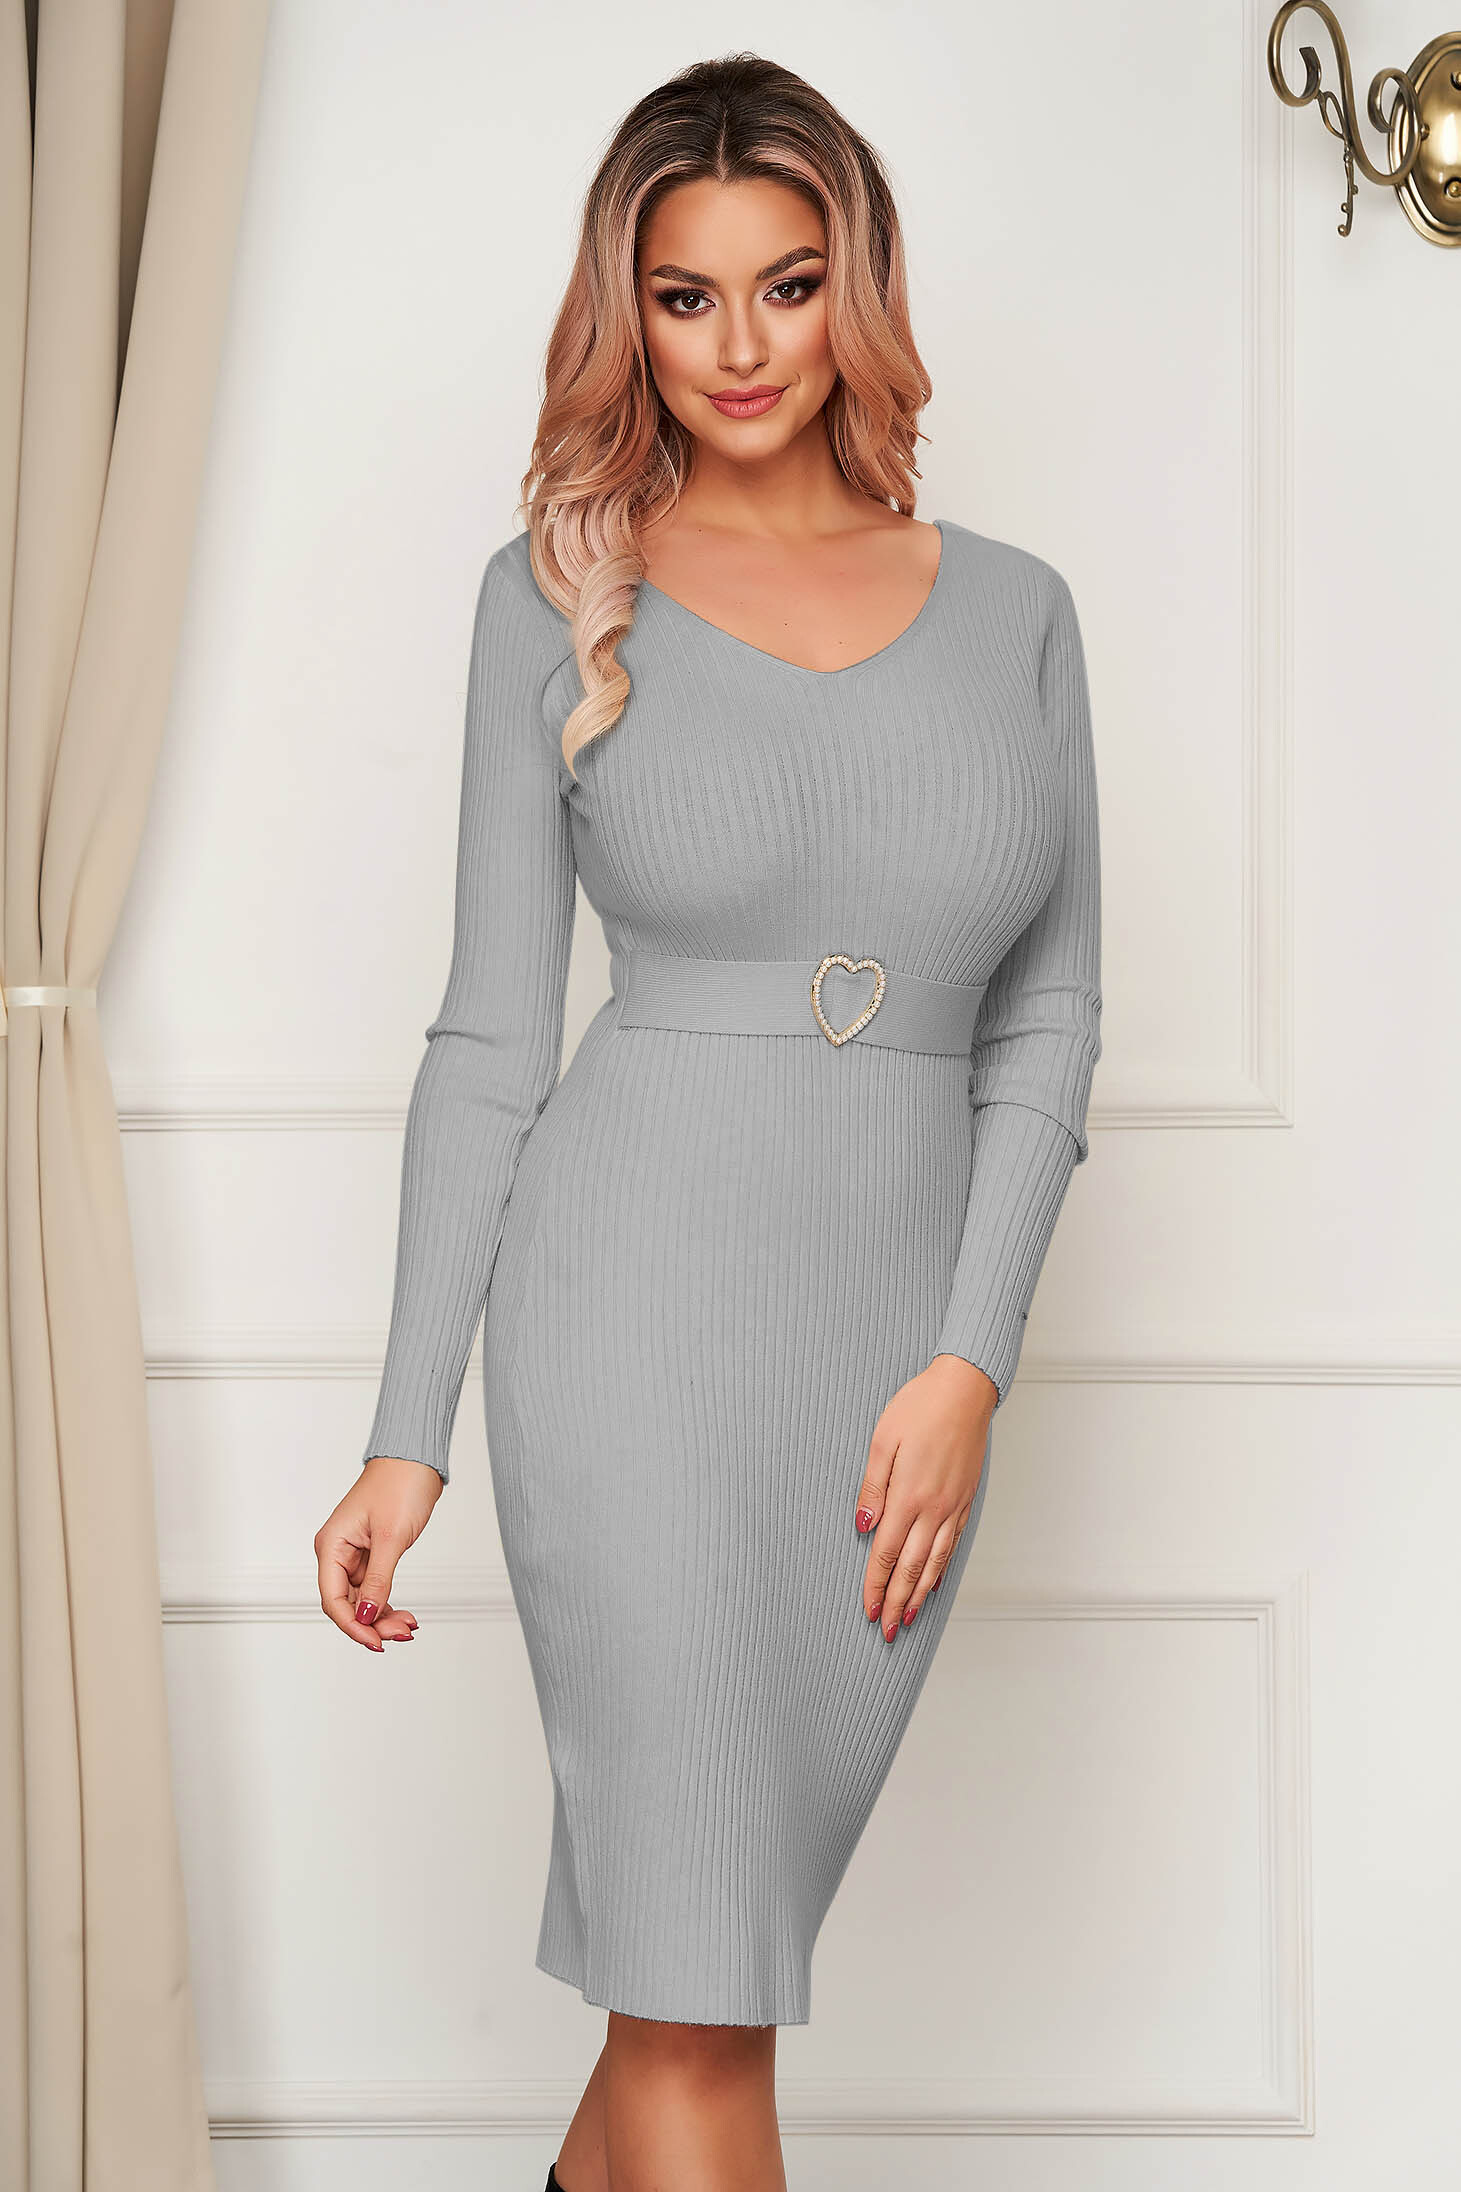 Grey dress midi pencil knitted with v-neckline daily